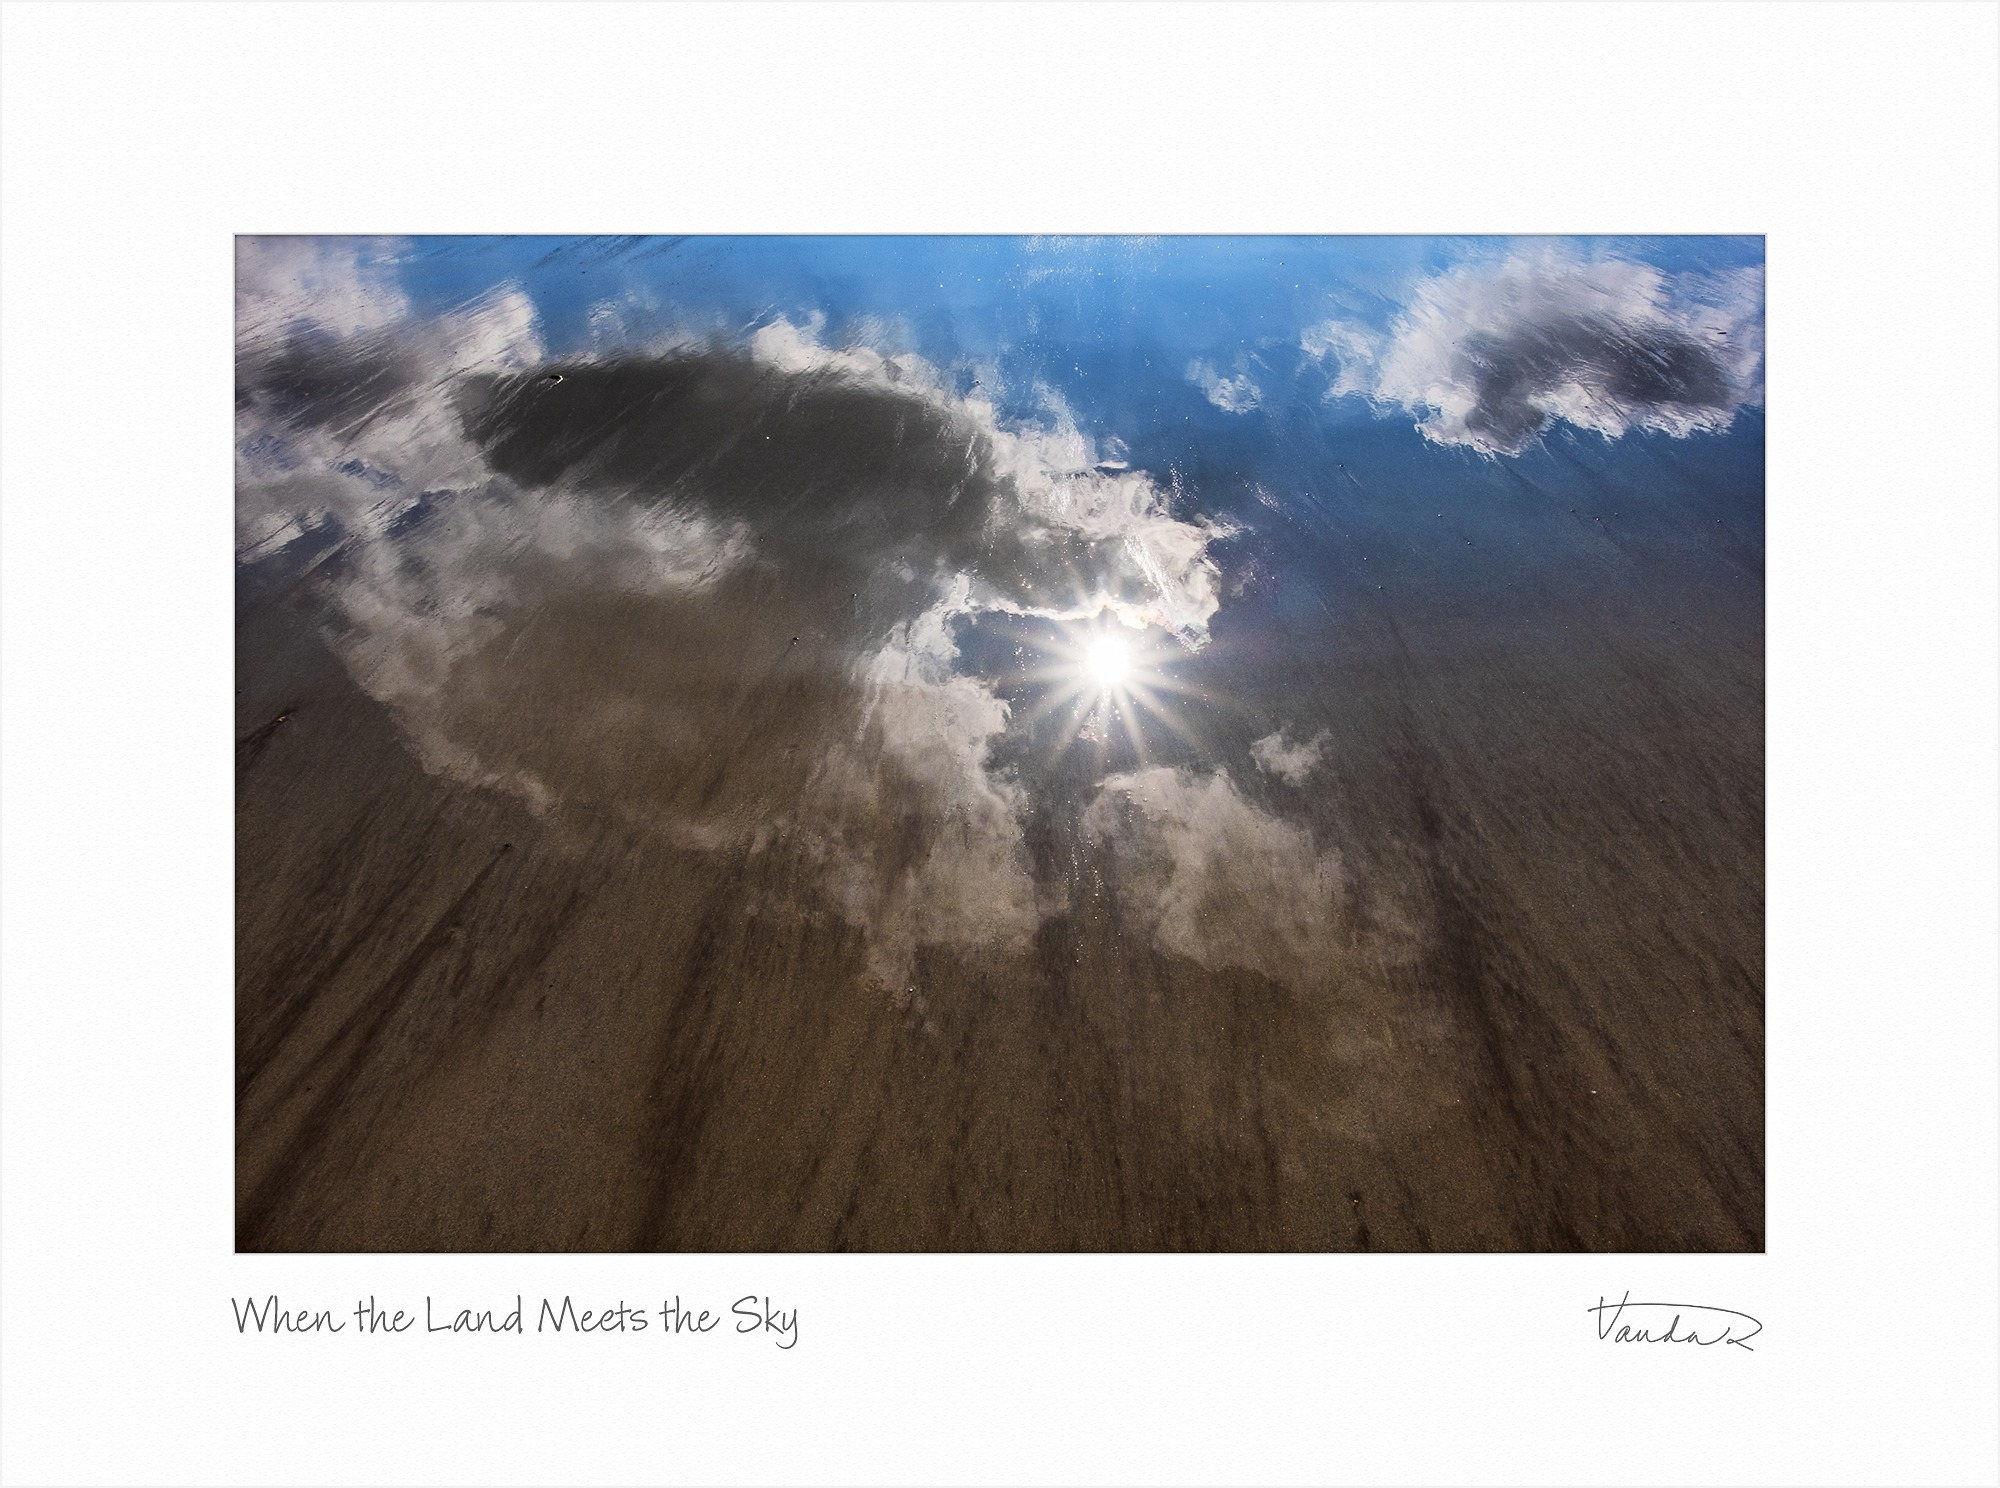 When the Land Meets the Sky